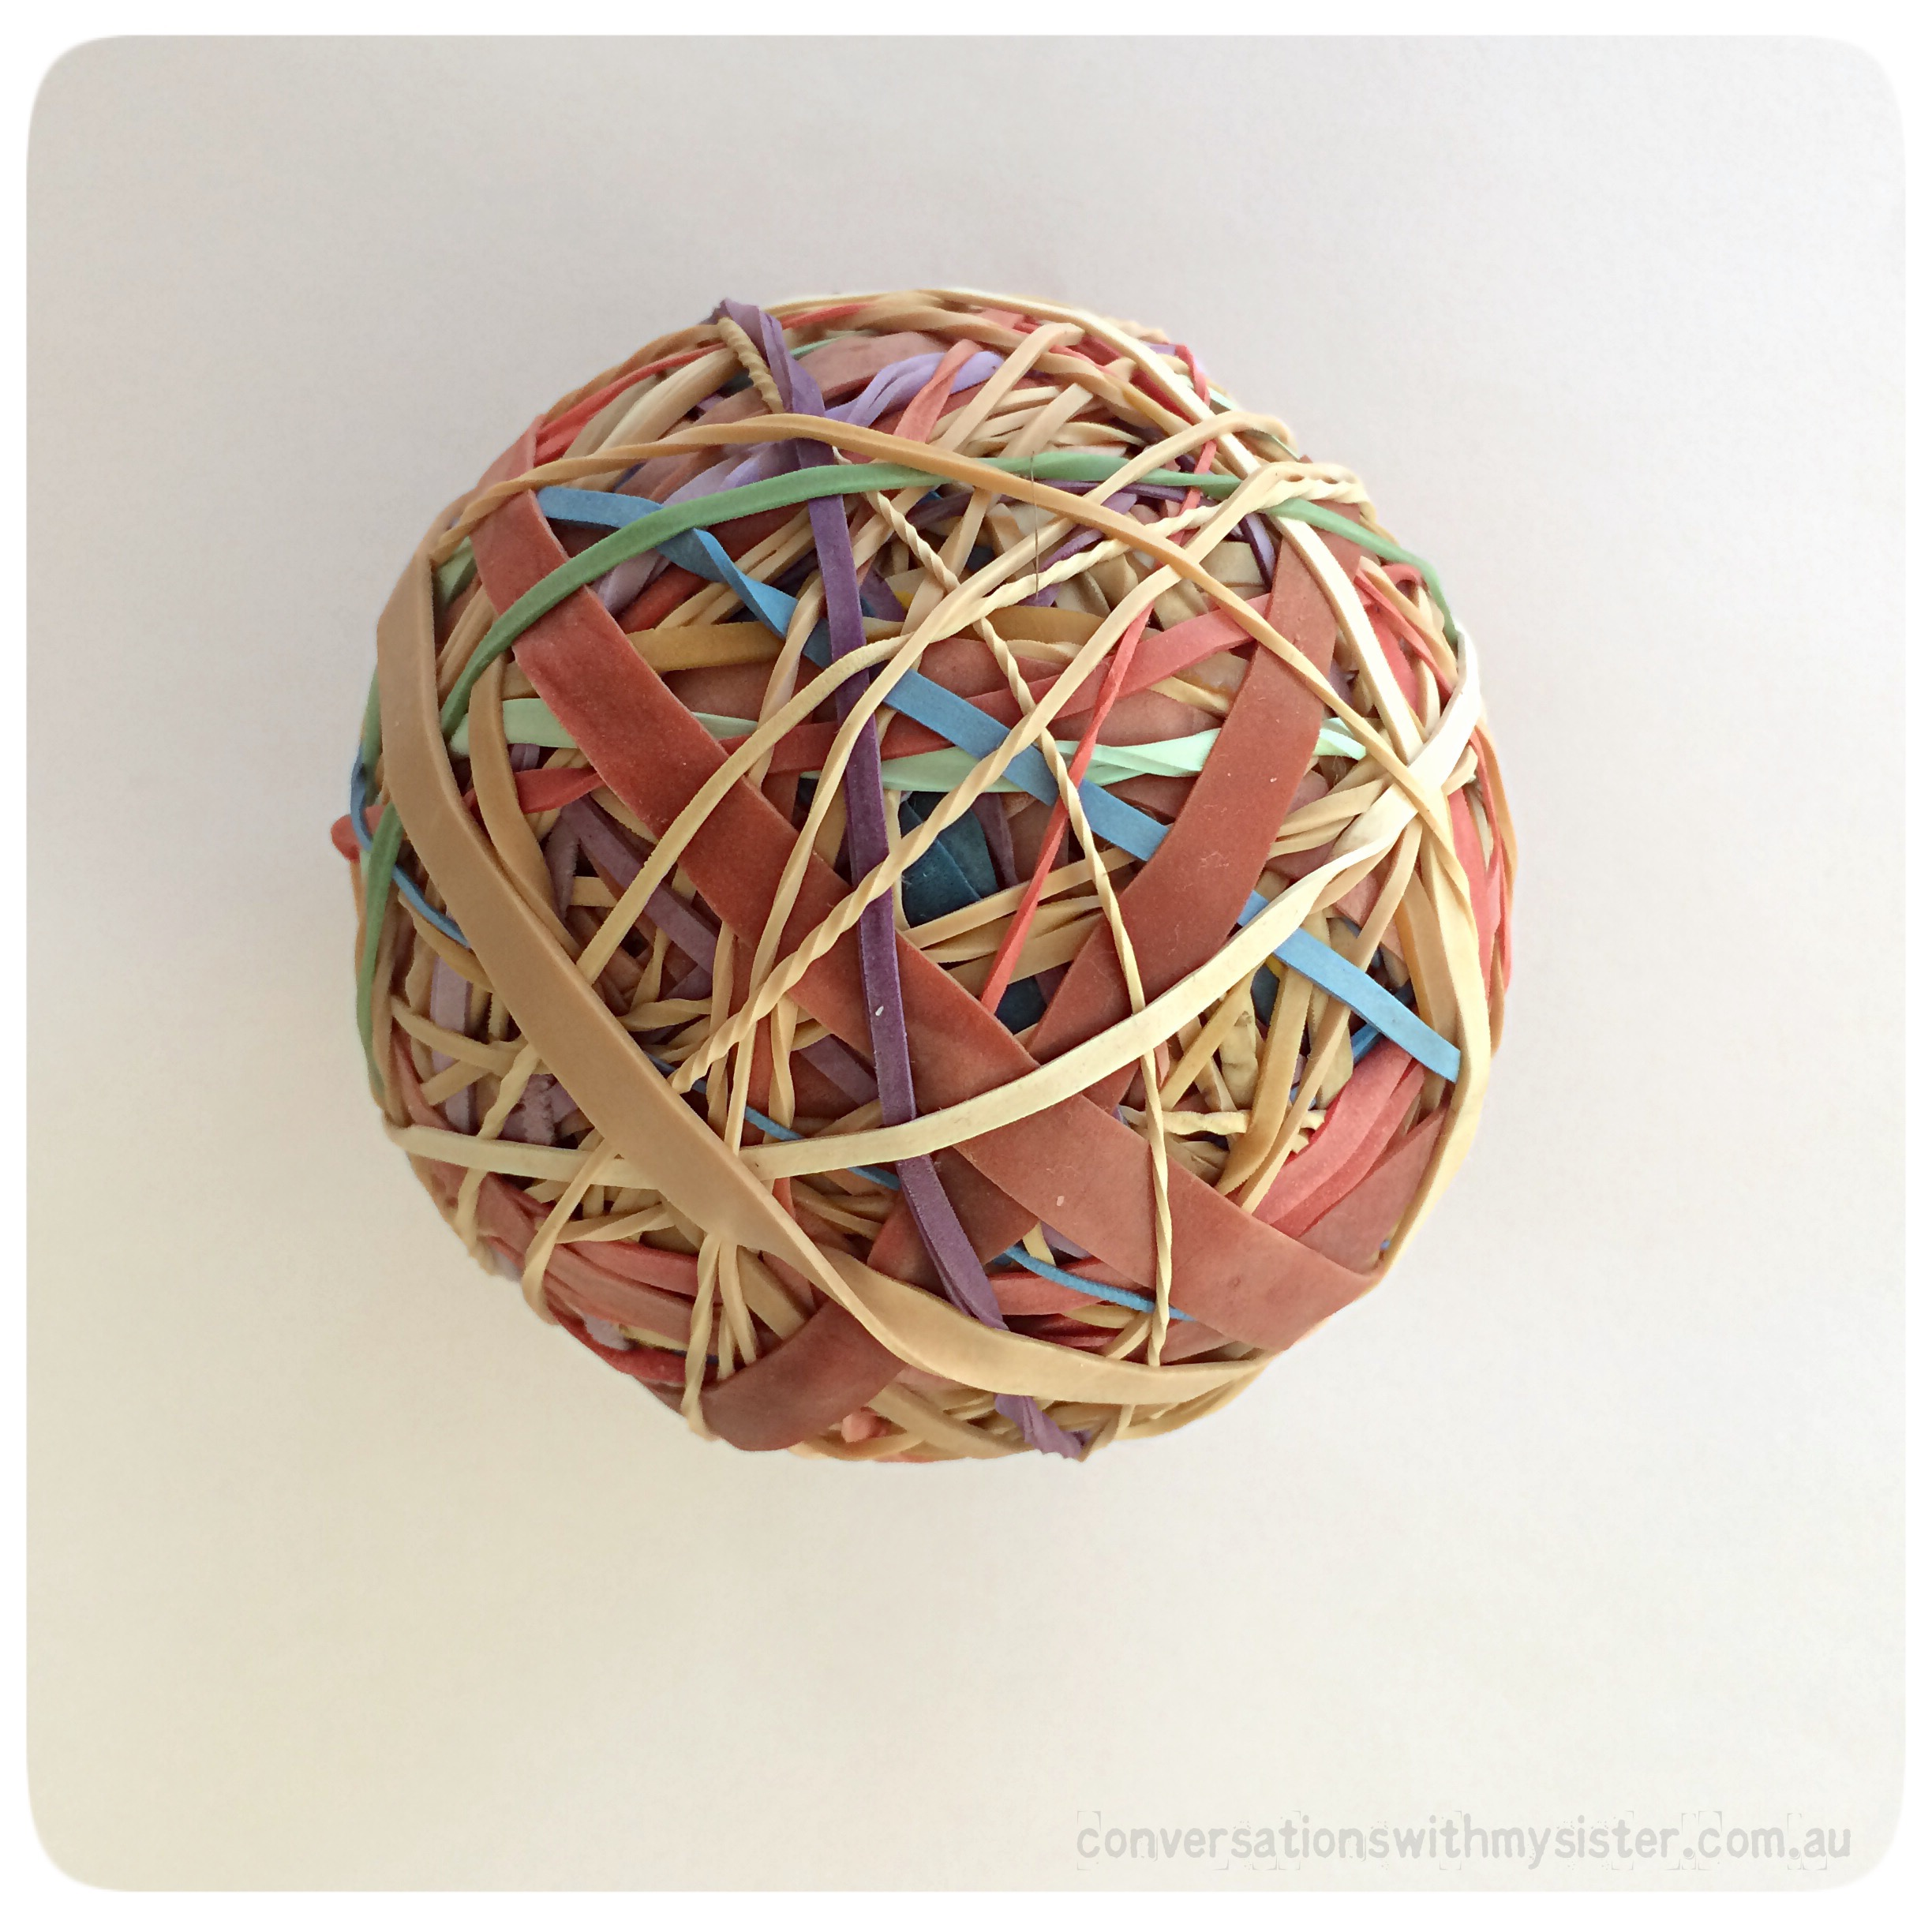 3 Easy Steps to Making a Rubber Band Ball_conversationswithmysister.com.au